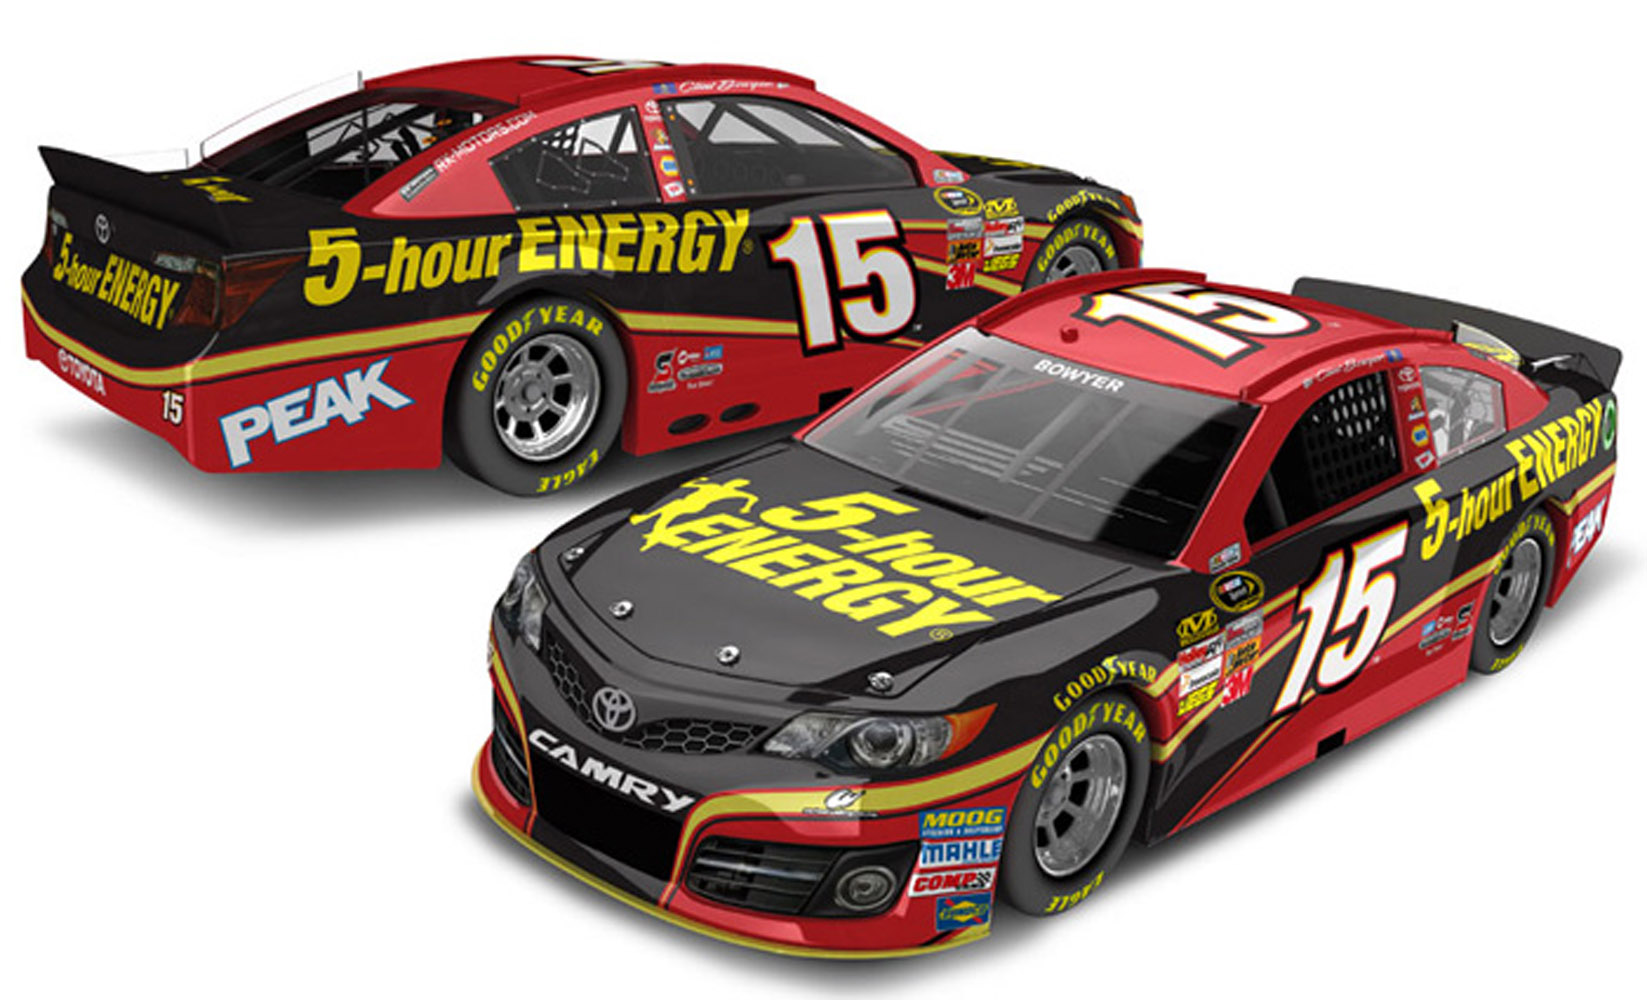 2013 Clint Bowyer #15 5-Hour Energy  1:24 Diecast Car